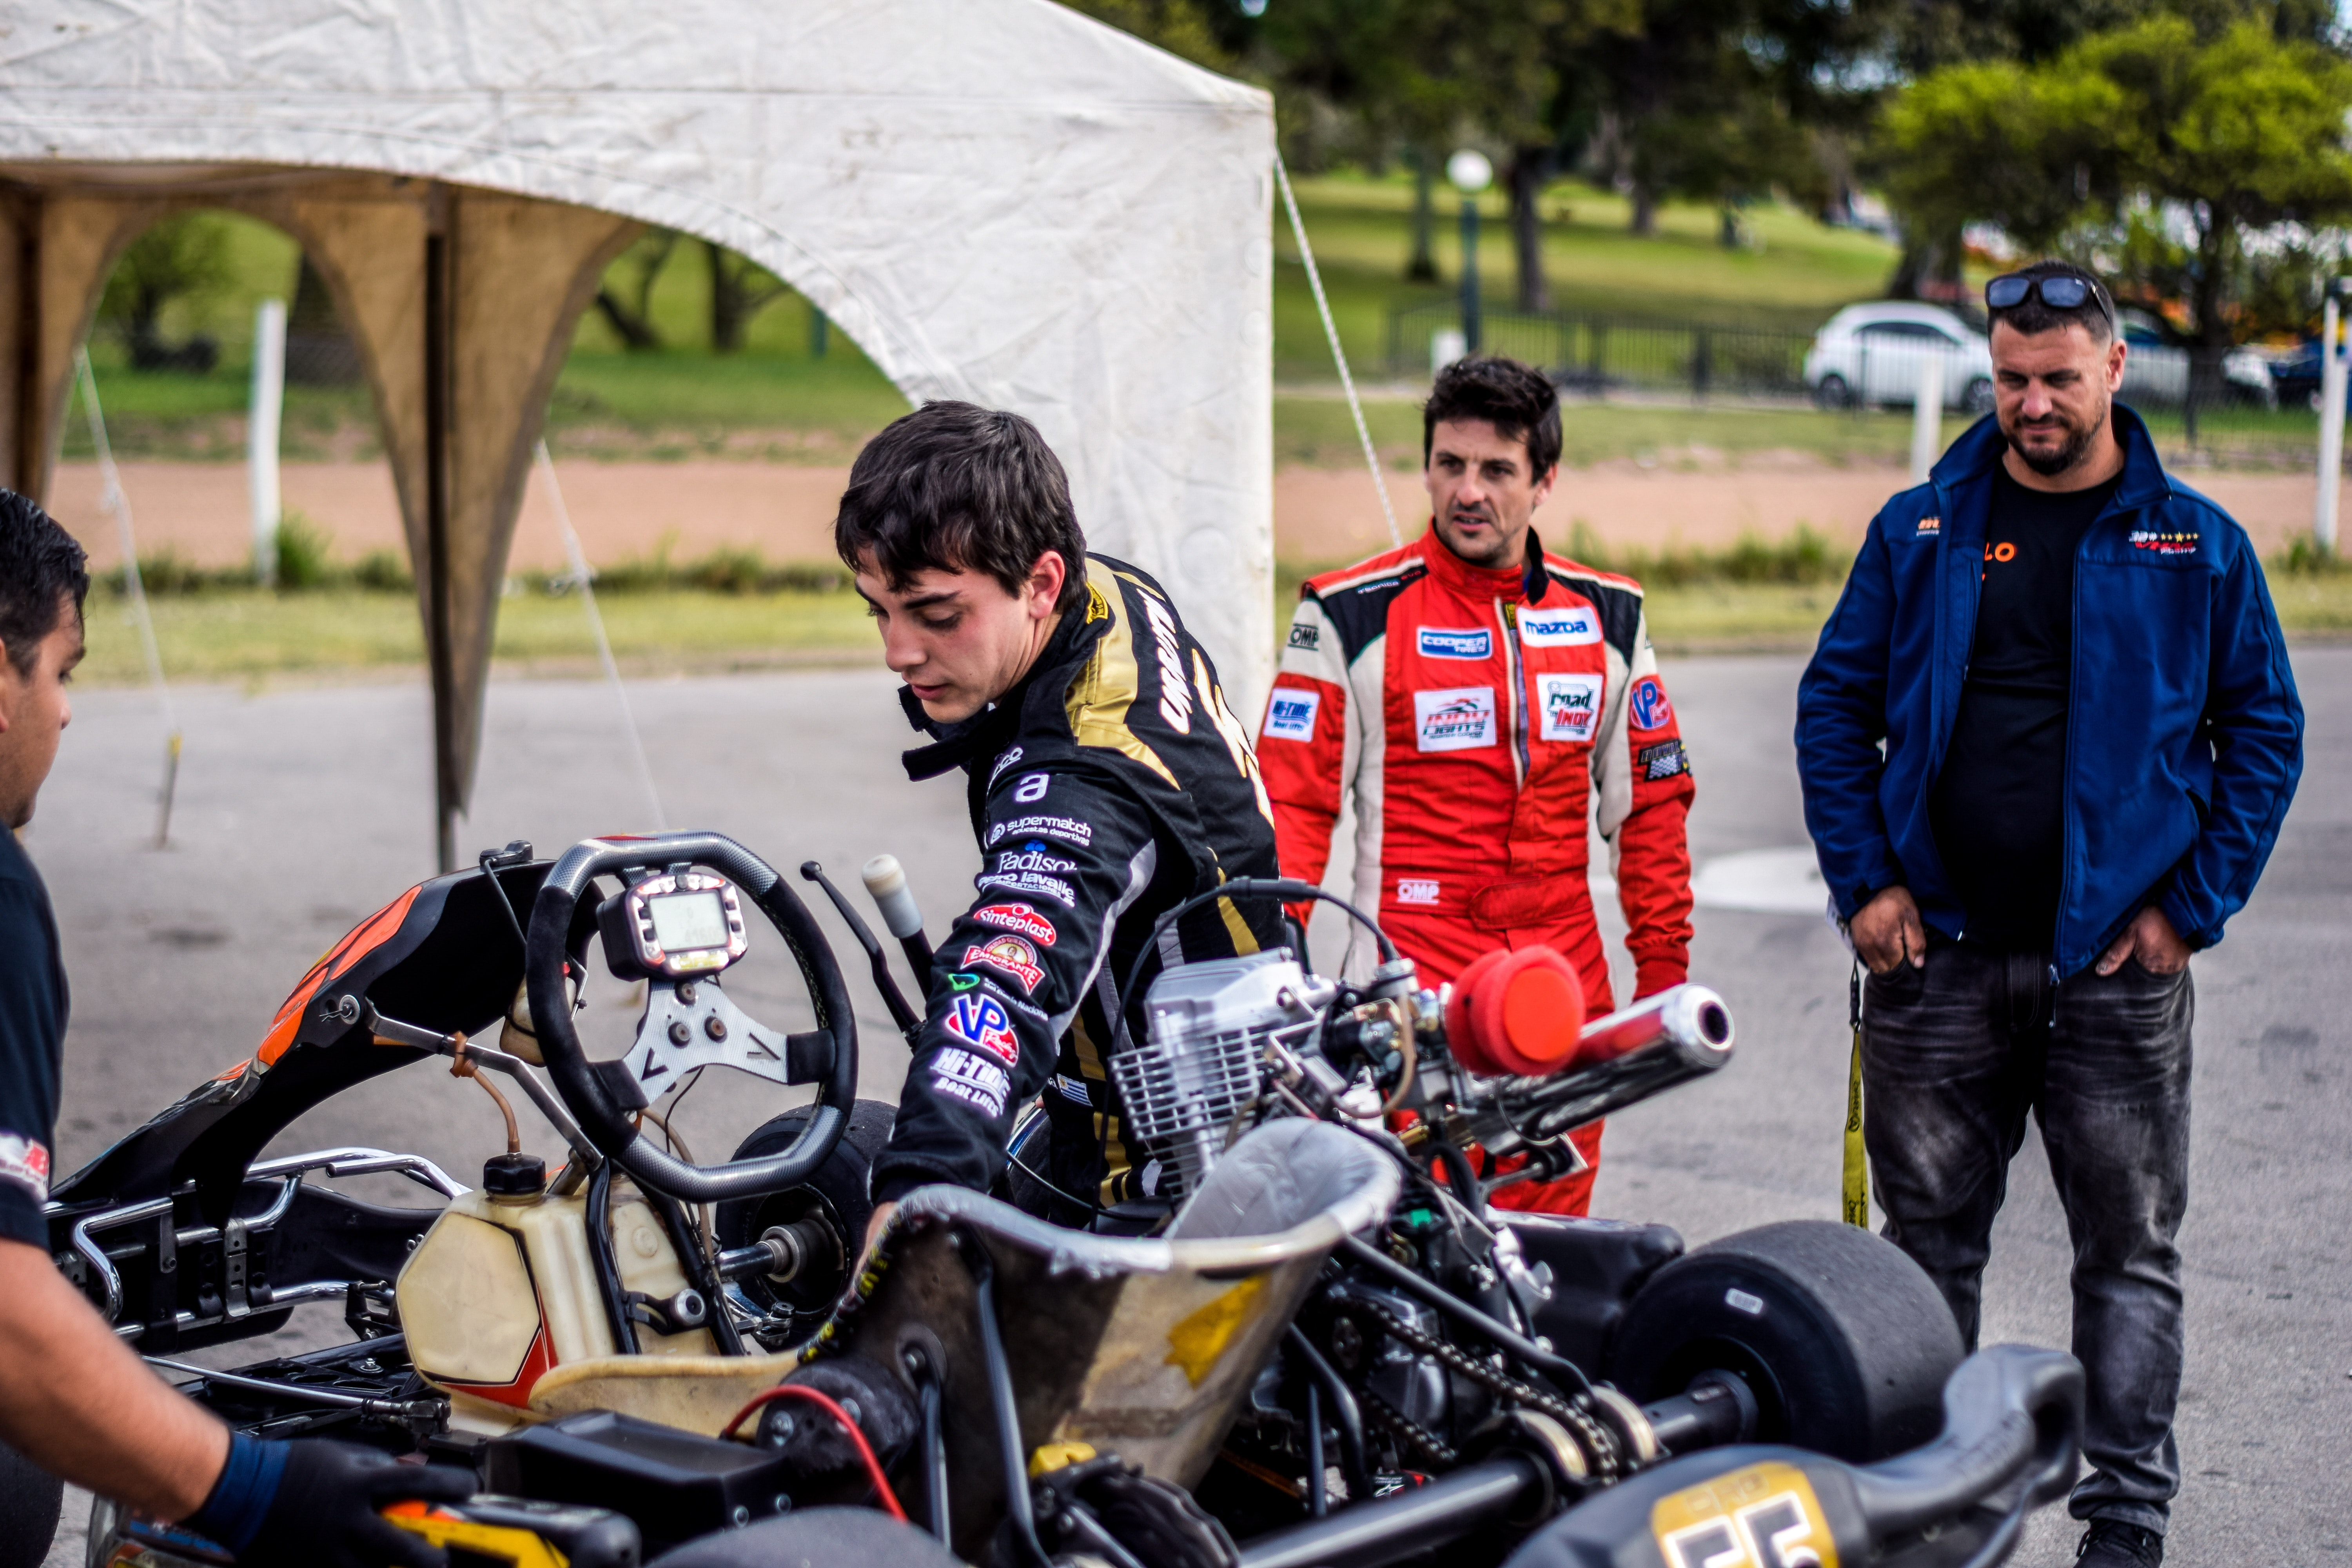 Two Motorcycle Racers Standing in Front of Motorcycles, Action, People, Vehicle, Uniform, HQ Photo